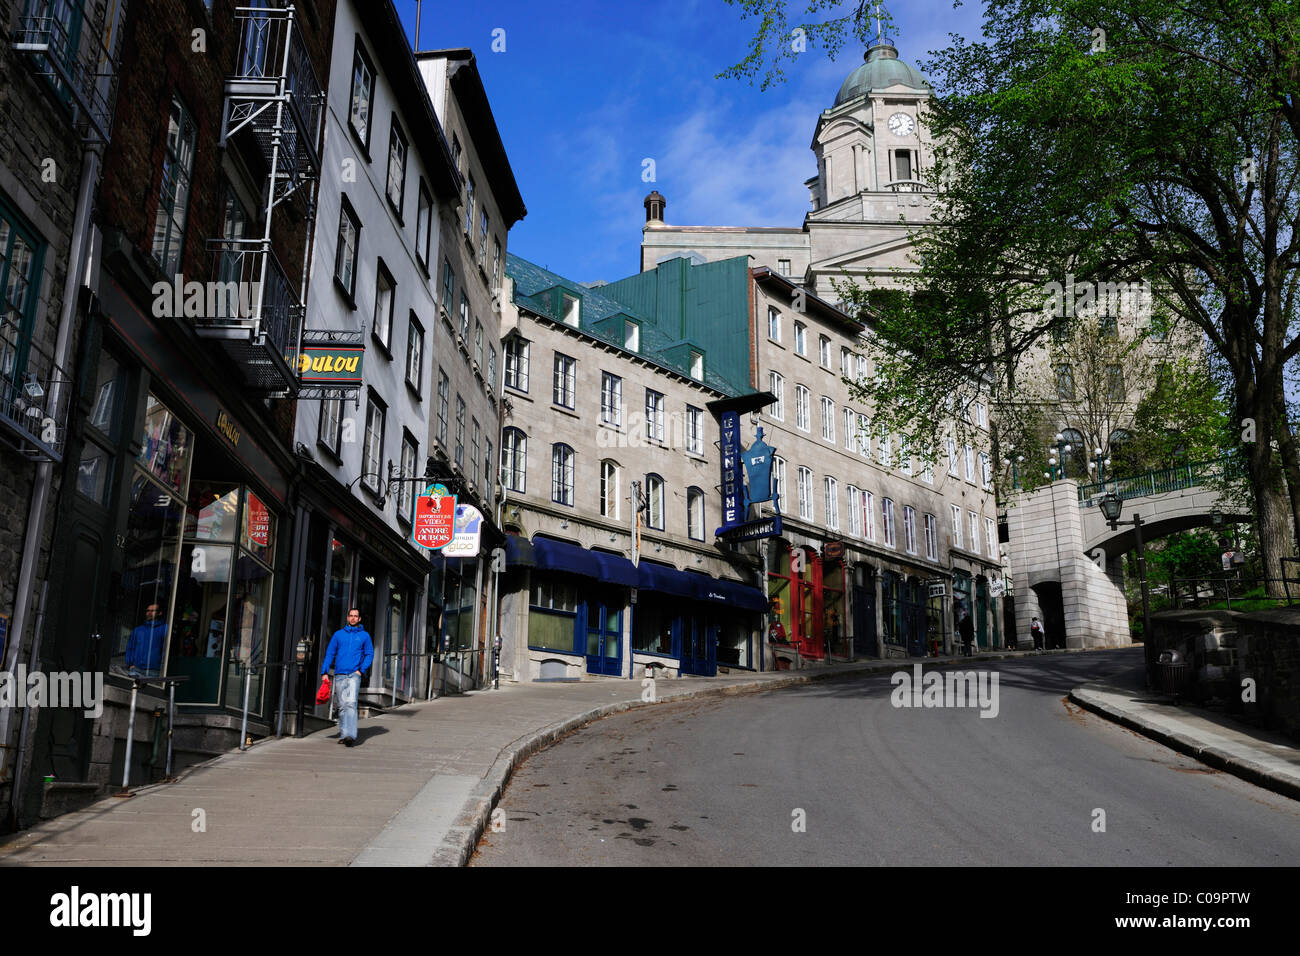 In the streets of the historic town centre of Quebec City, Quebec, Canada - Stock Image